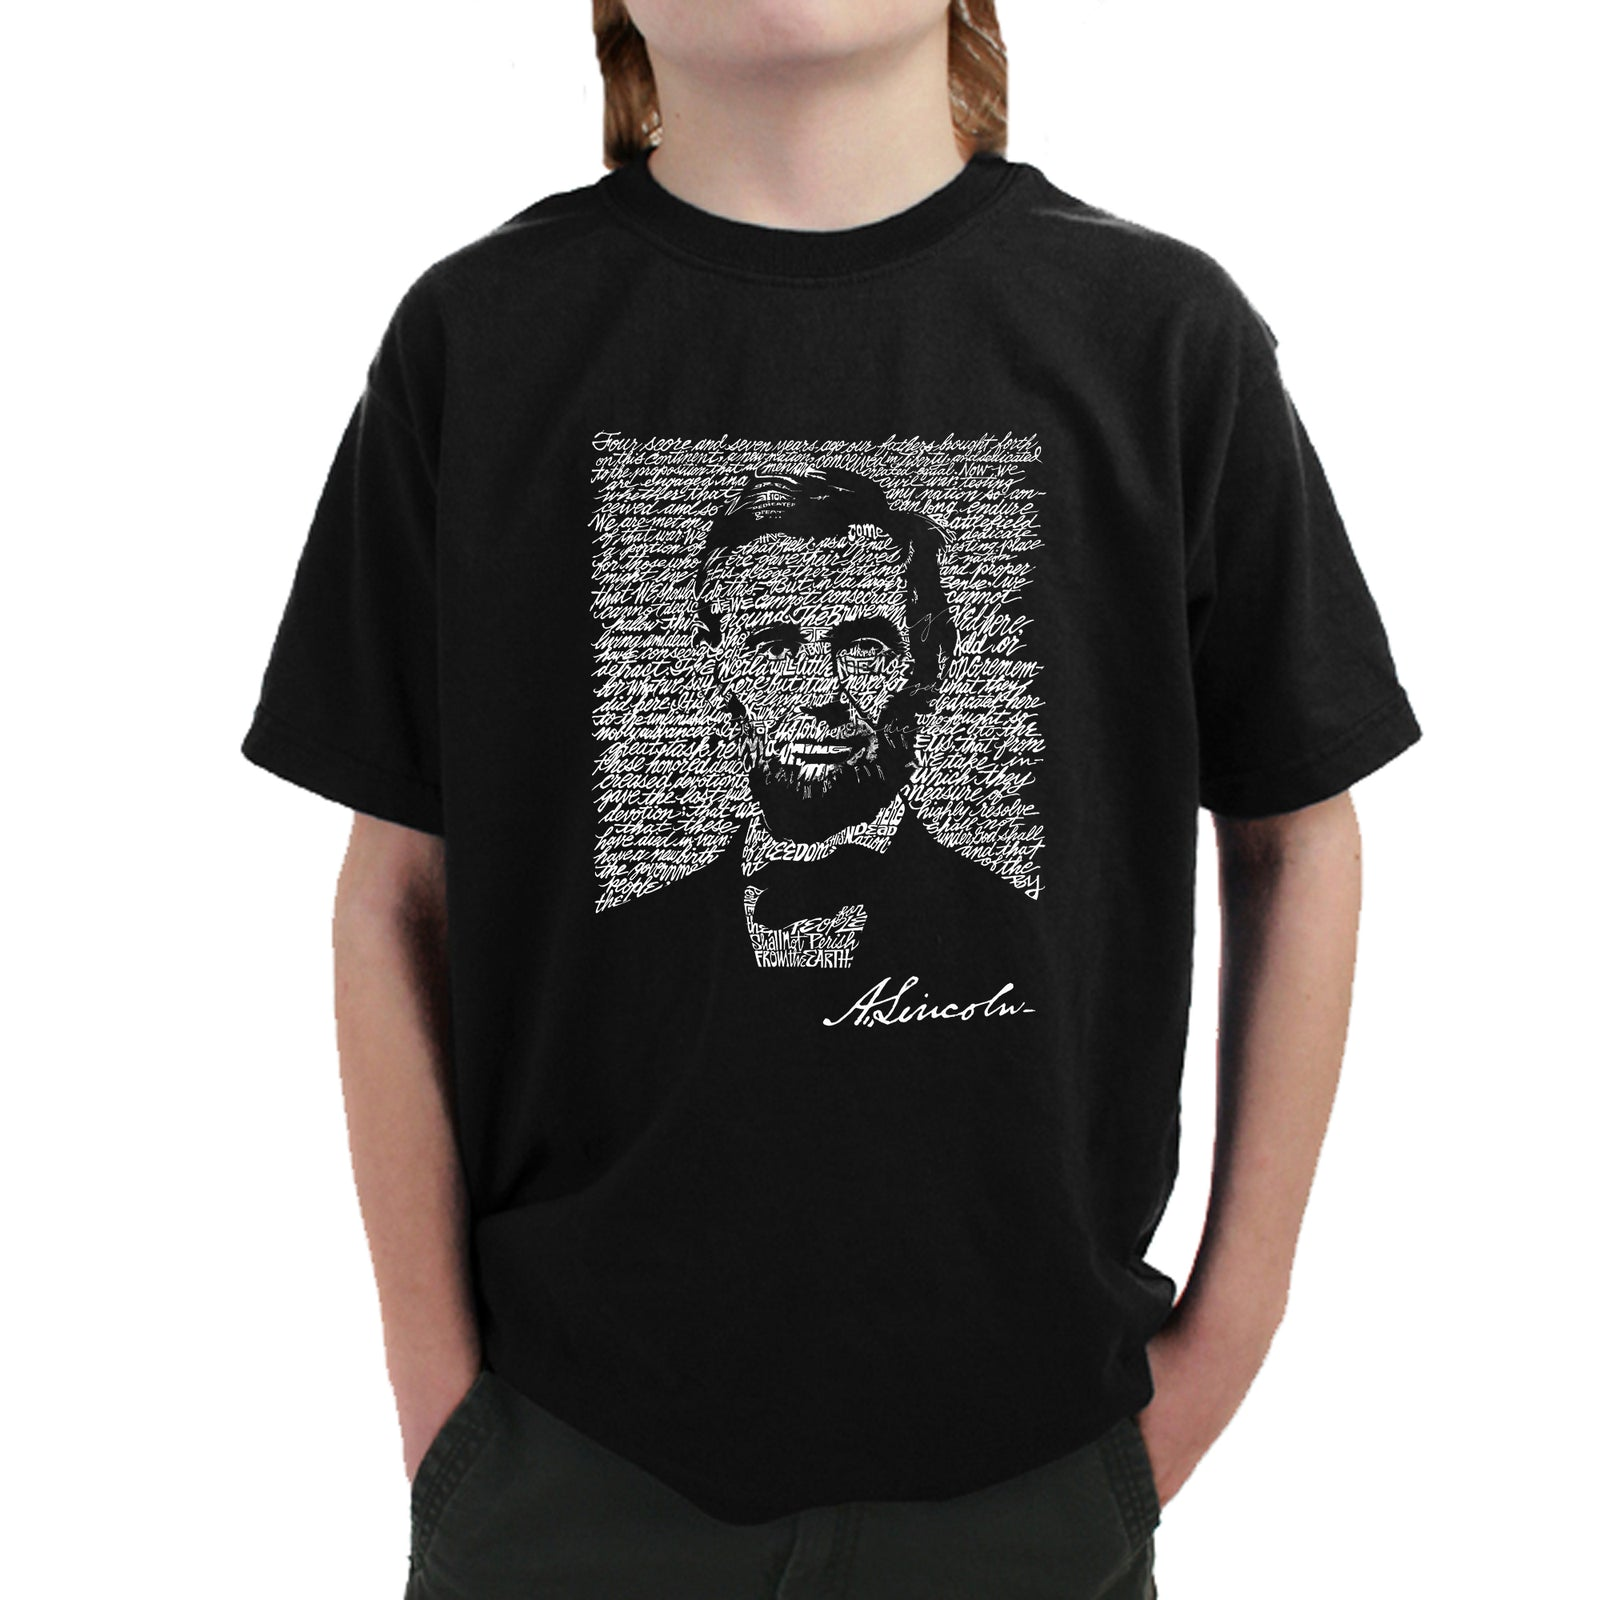 Boy's T-shirt - ABRAHAM LINCOLN - GETTYSBURG ADDRESS